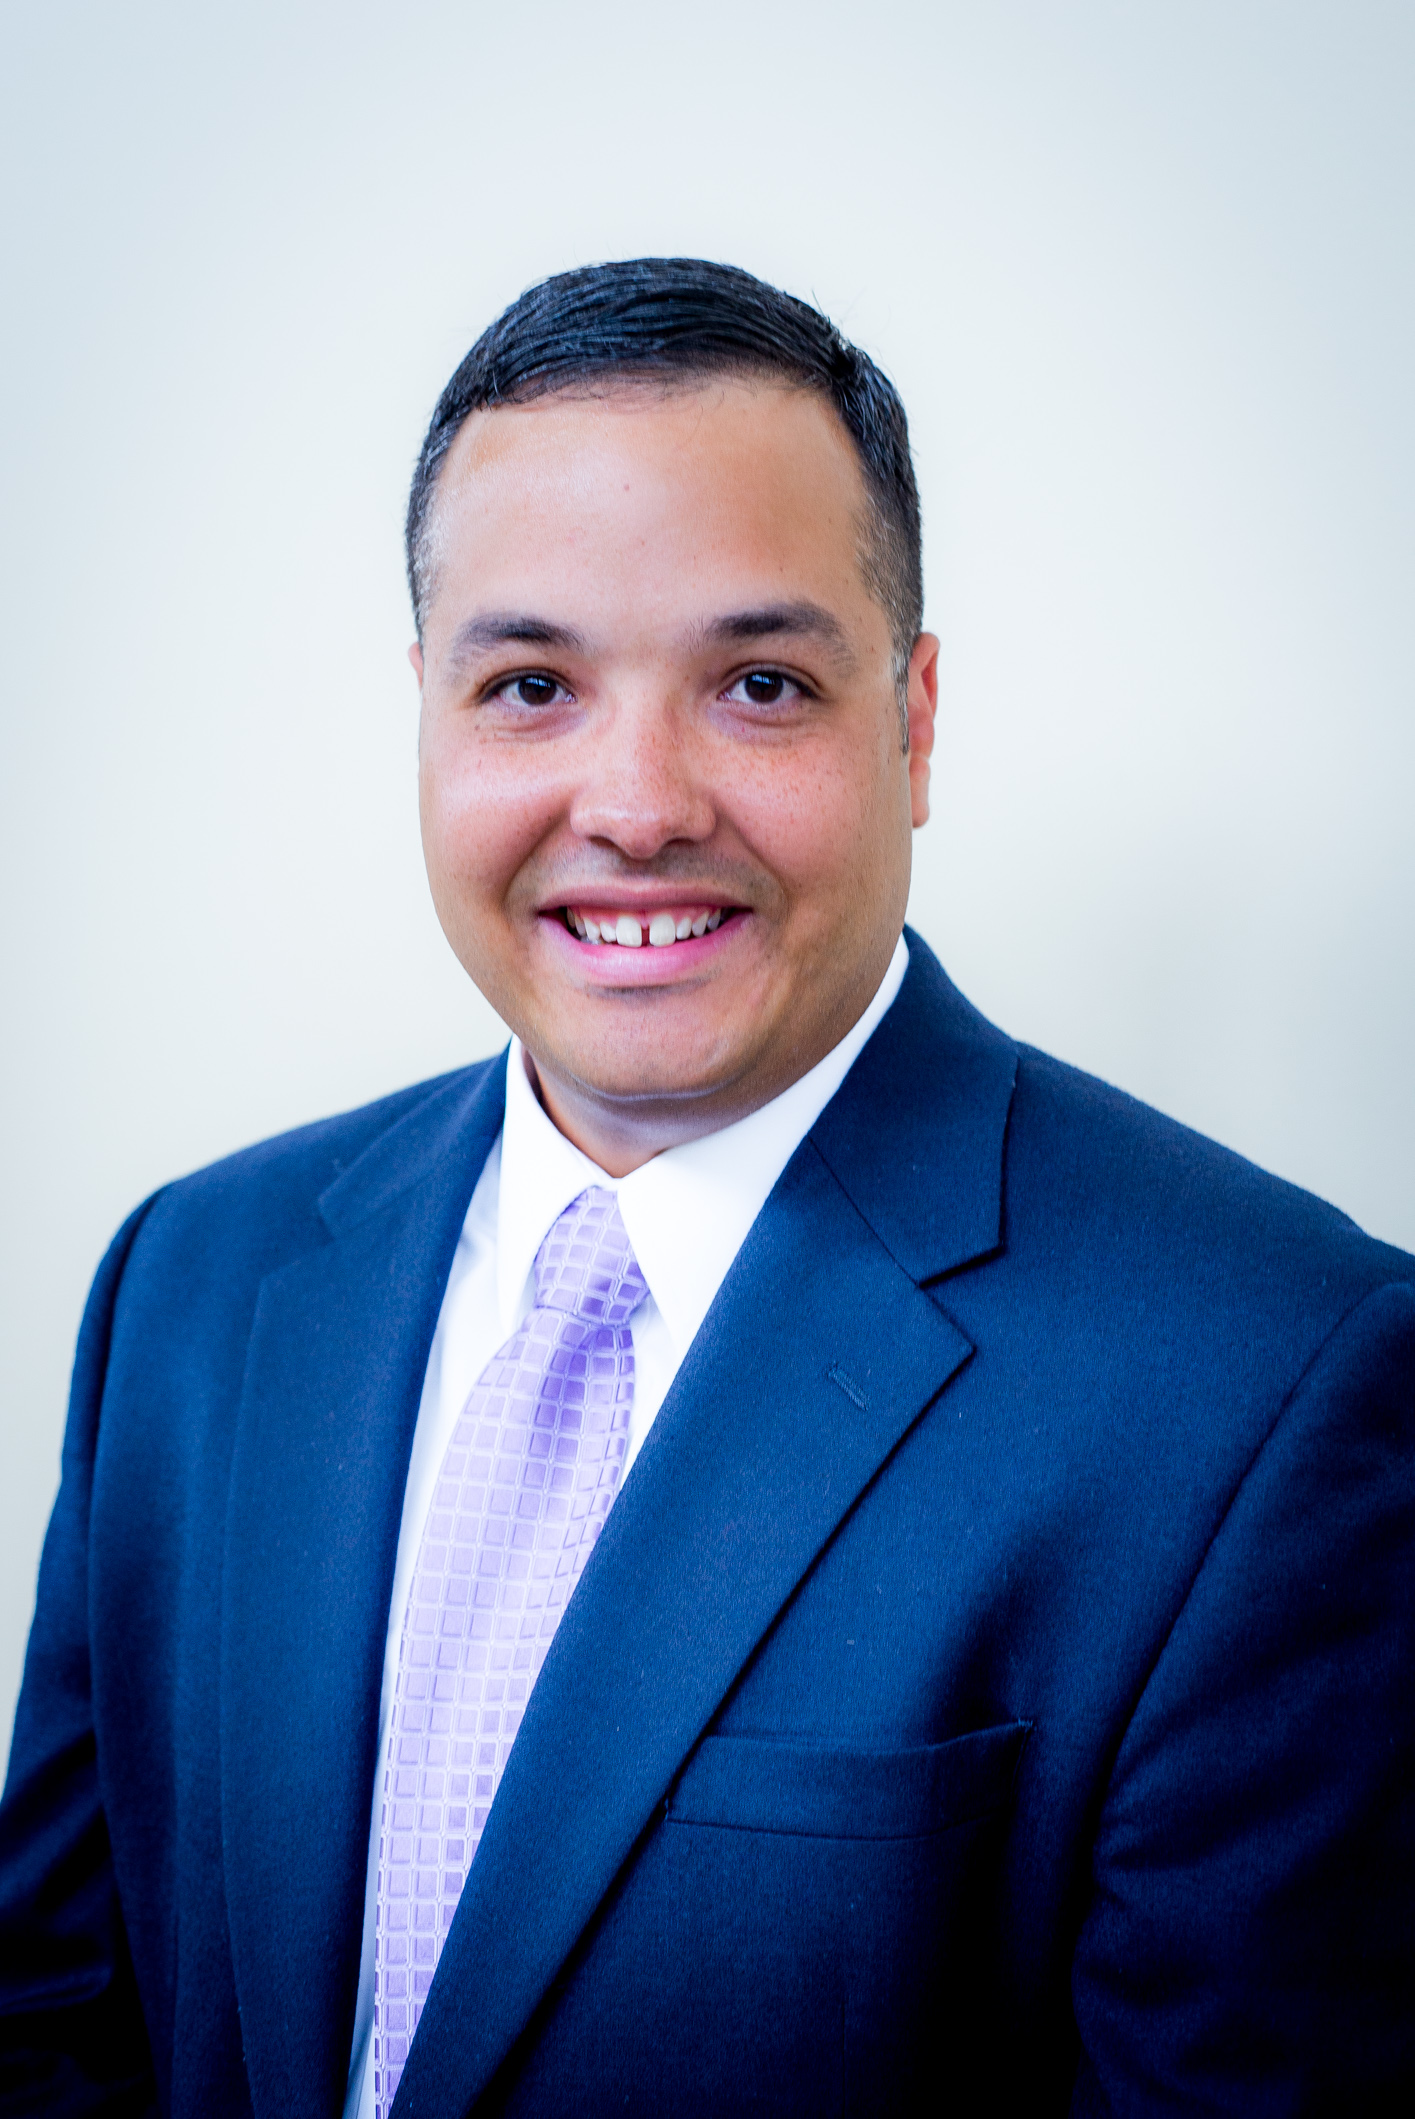 Jose Cuevas, financial advisor Streamwood IL